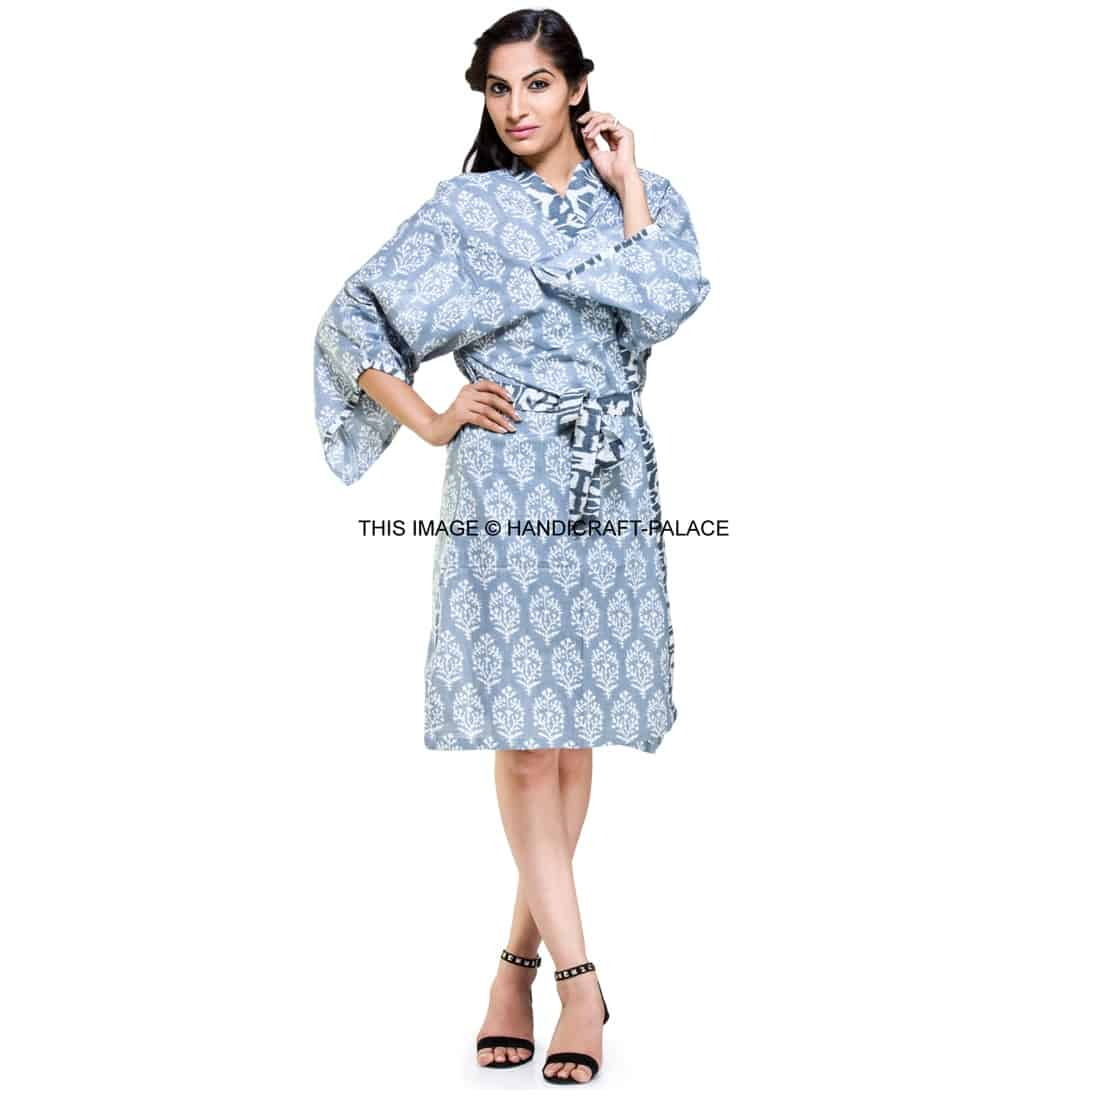 9c14d8c651 Indian Cotton Floral Print Kimono Dressing Gown Bath Robe Intimates  Nightwear  19.99. Click ...